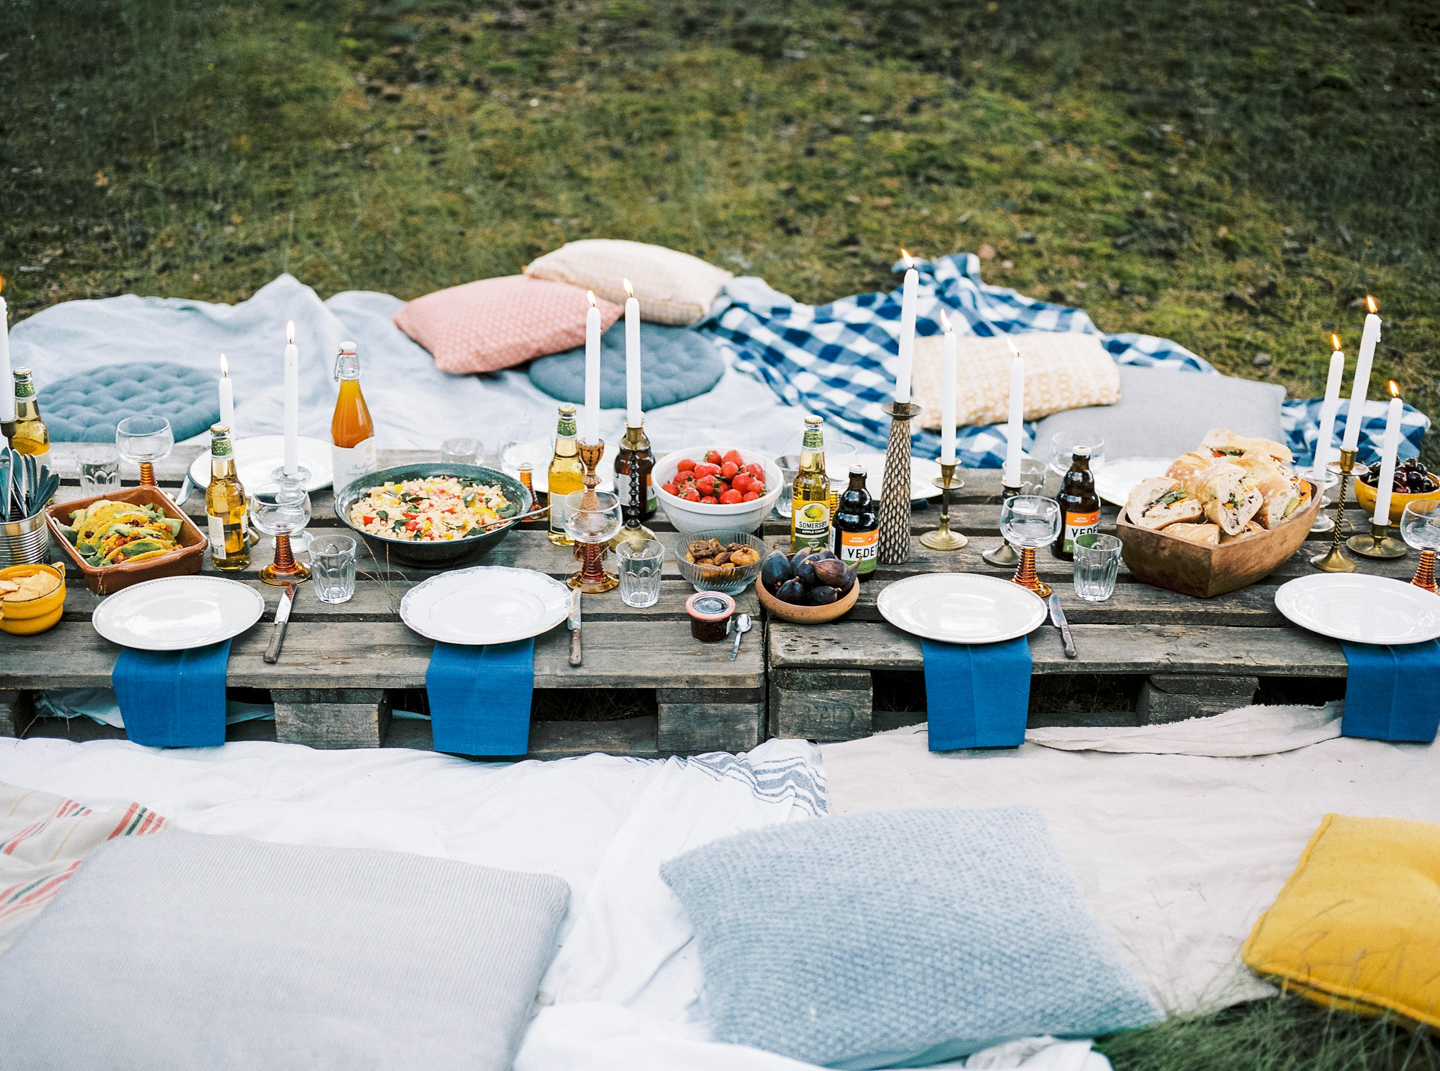 forest-picnic-with-friends-inspire-styling-hanke-arkenbout-photography-60.jpg